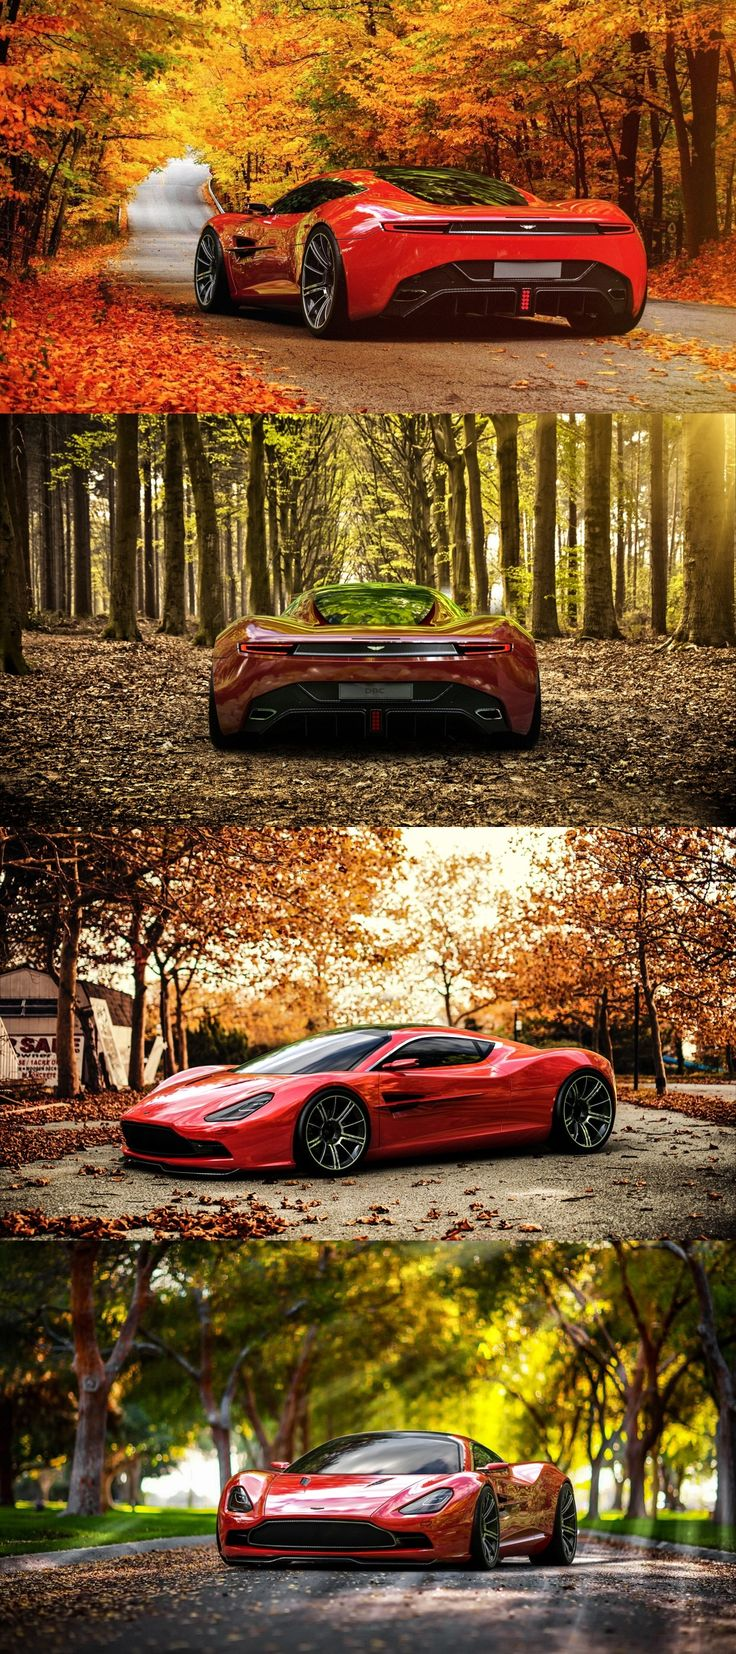 Best Super Car S Images On Pinterest Car Cool Cars And Dream